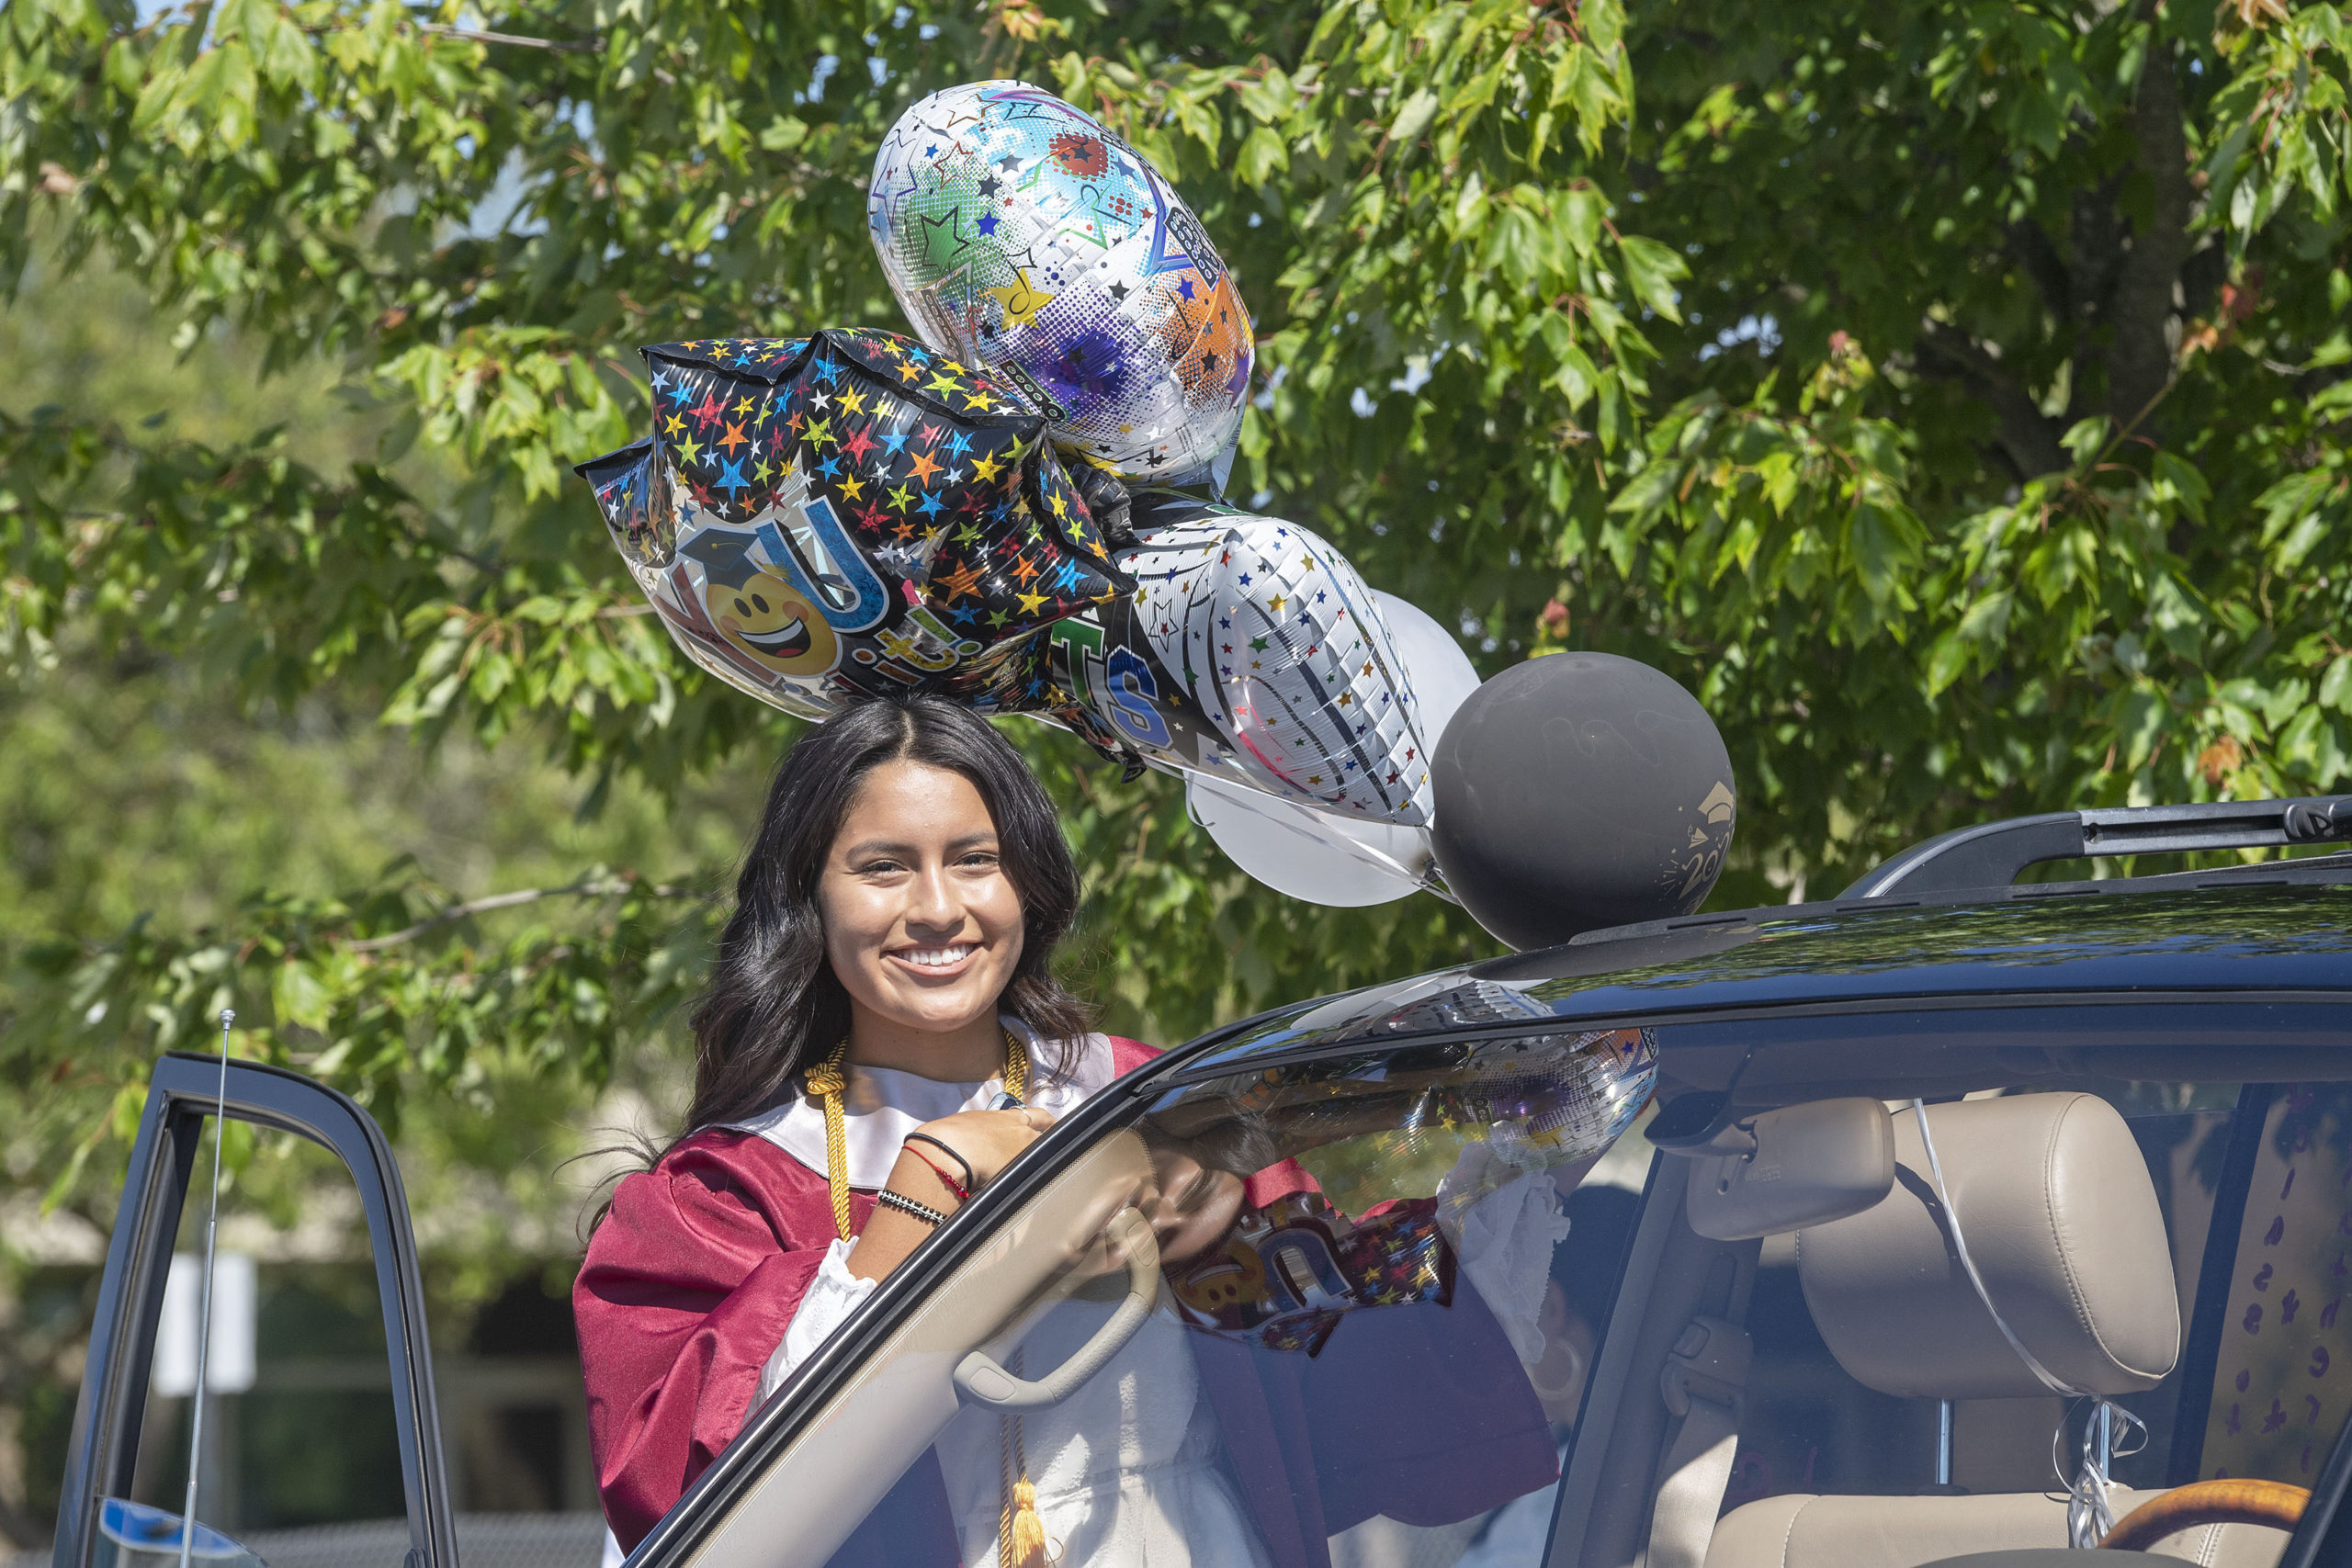 East Hampton High School Senior Katherine Quivhpe gets ready to participate in the 2020 graduation ceremony at the East Hampton High School on Friday.